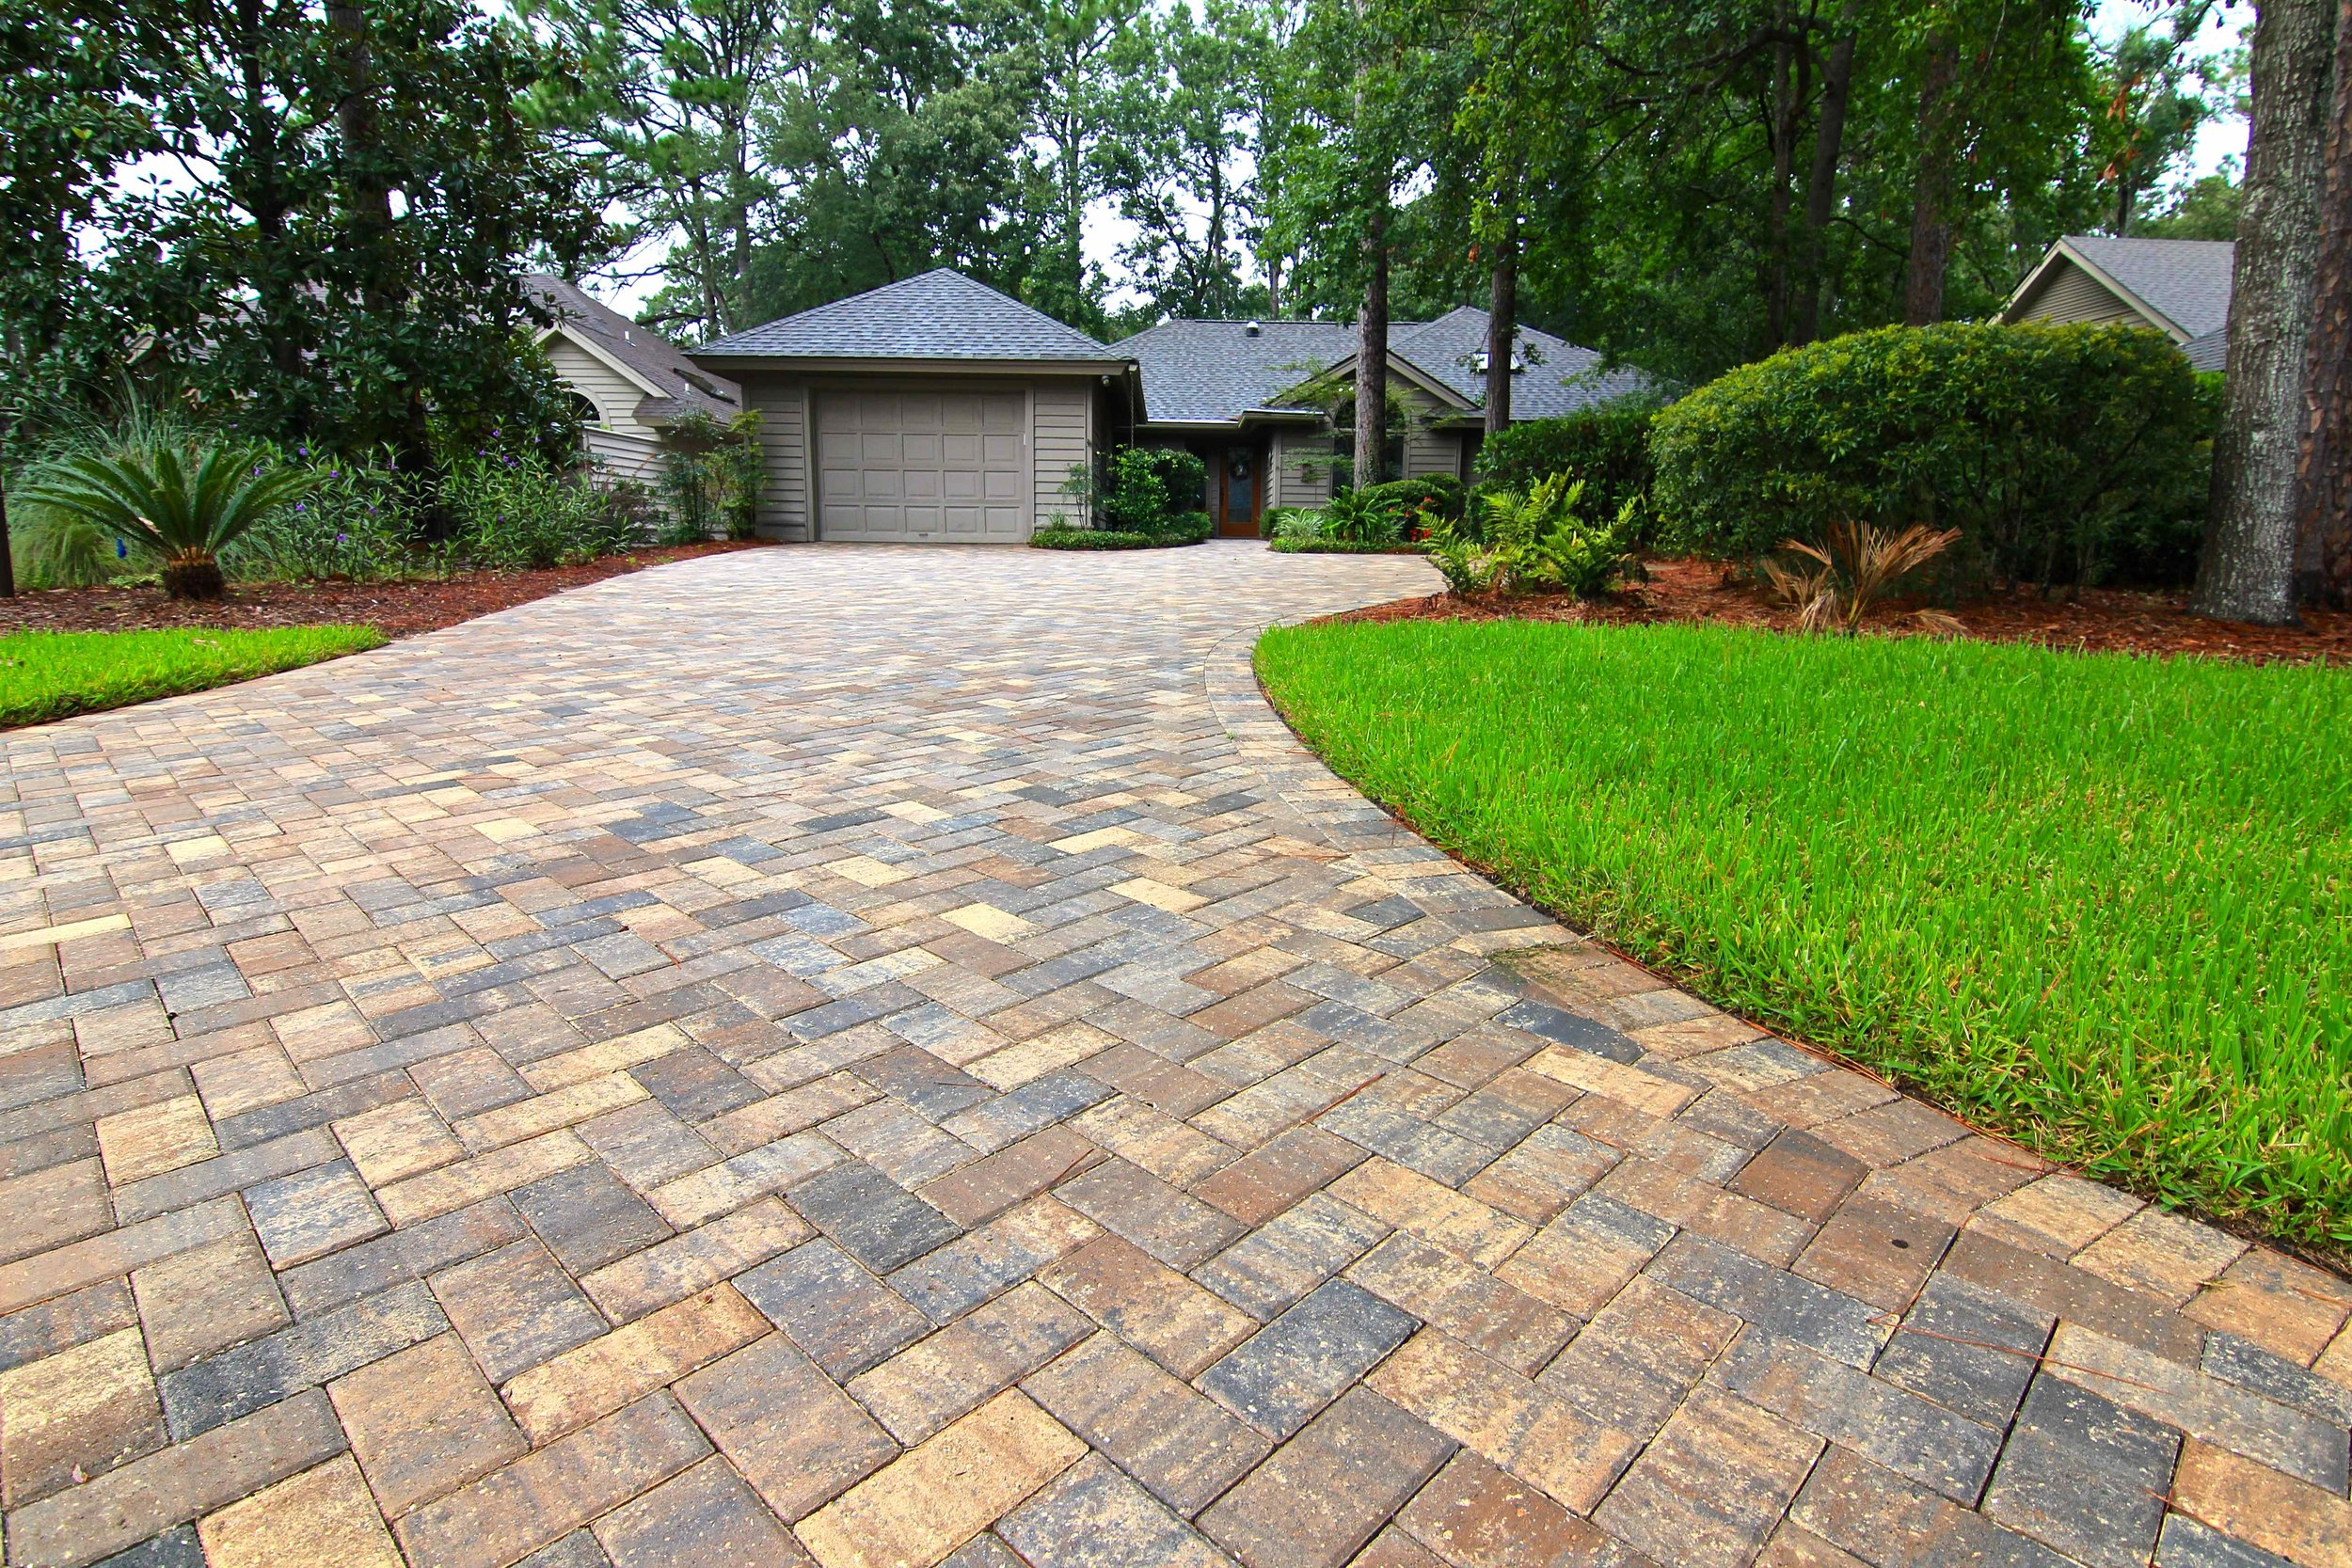 Benefits of Cleaning & sealing Your Pavers - Did You Just Install A New Hardscape Project And Now You Want To Keep It Looking Refreshed & Vibrant? Applying Sealing Can Help You Maintain That New Paver Color All Year Around!